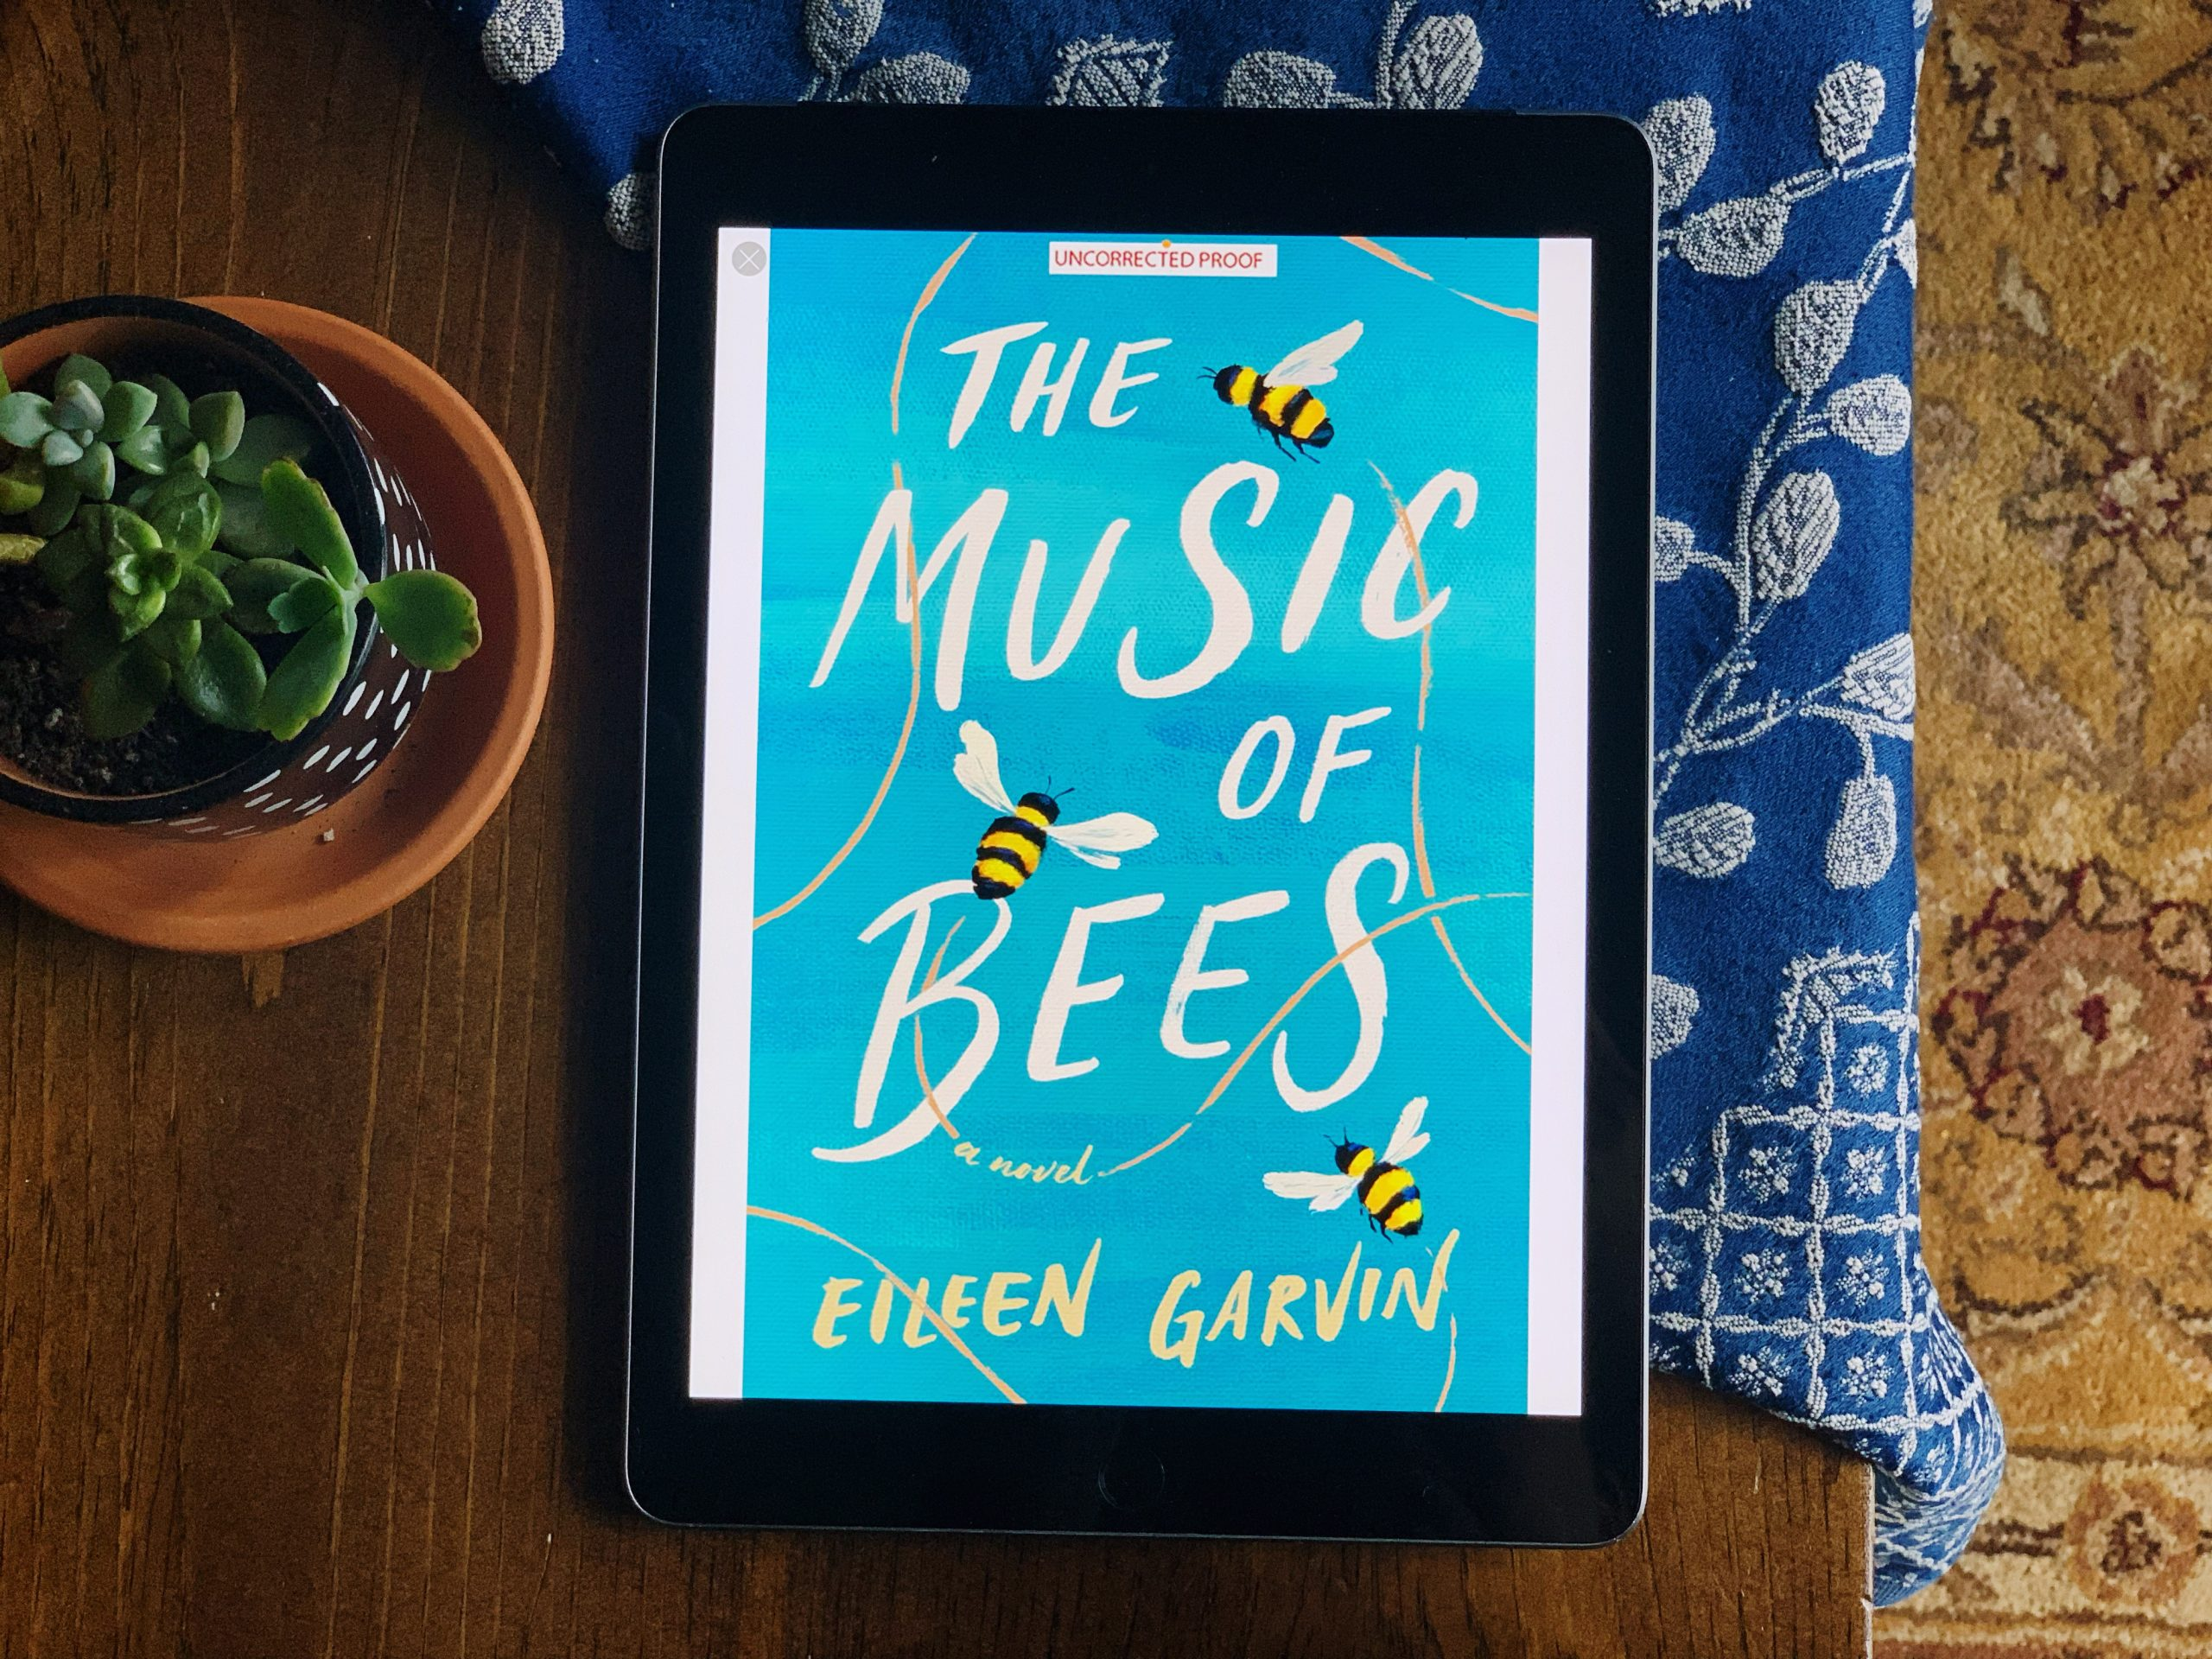 An iPad showing the cover of The Music of Bees - an Advanced Readers Copy (digital) on the Kindle app. The iPad is sitting on a table with a plant next to it.